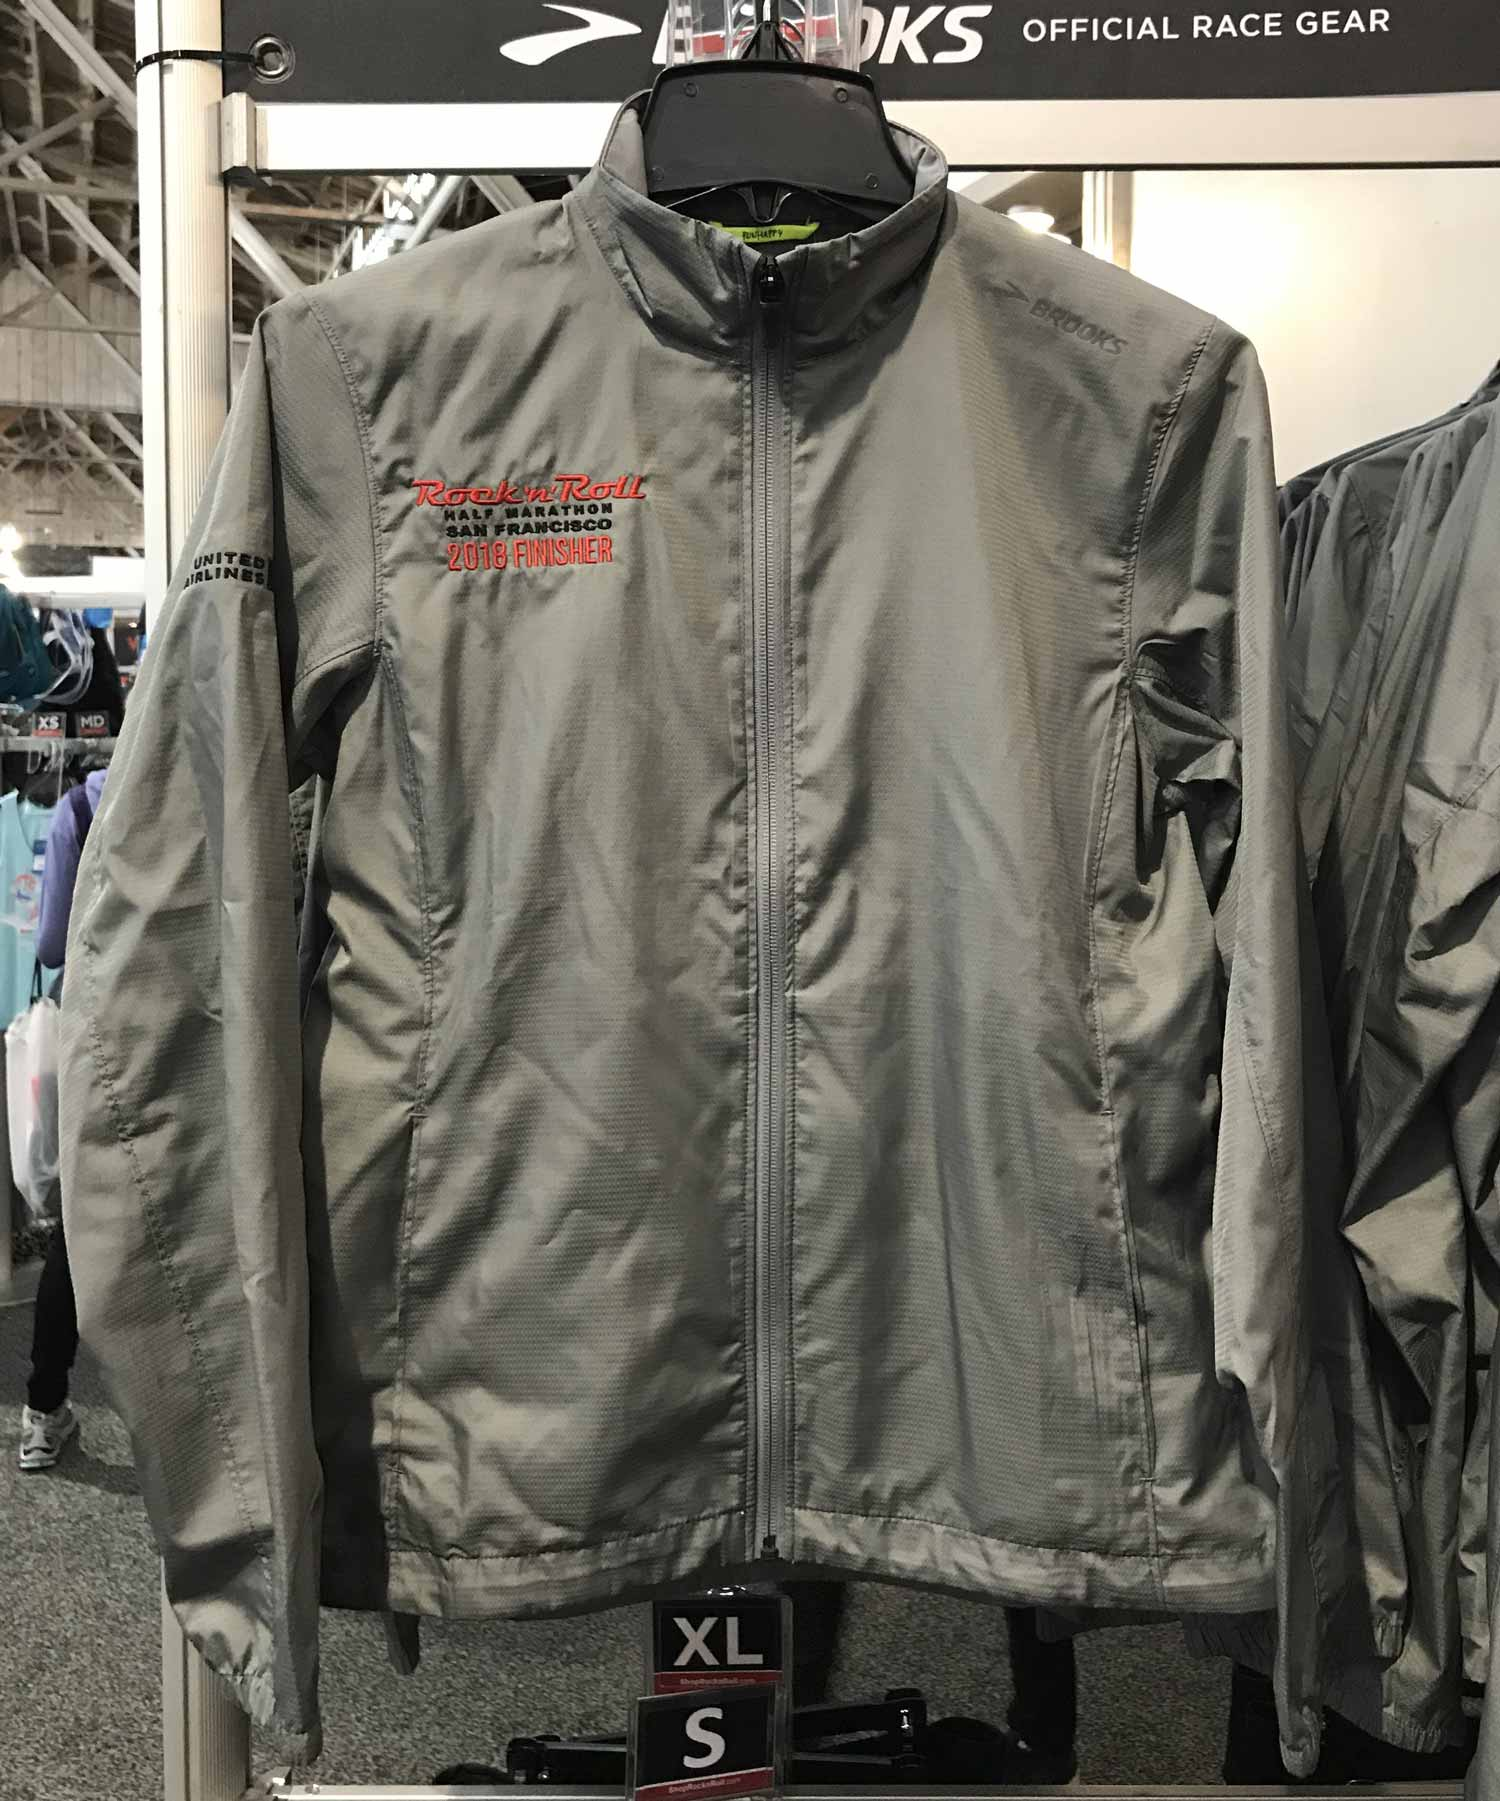 SFR18 FINISHER JACKET